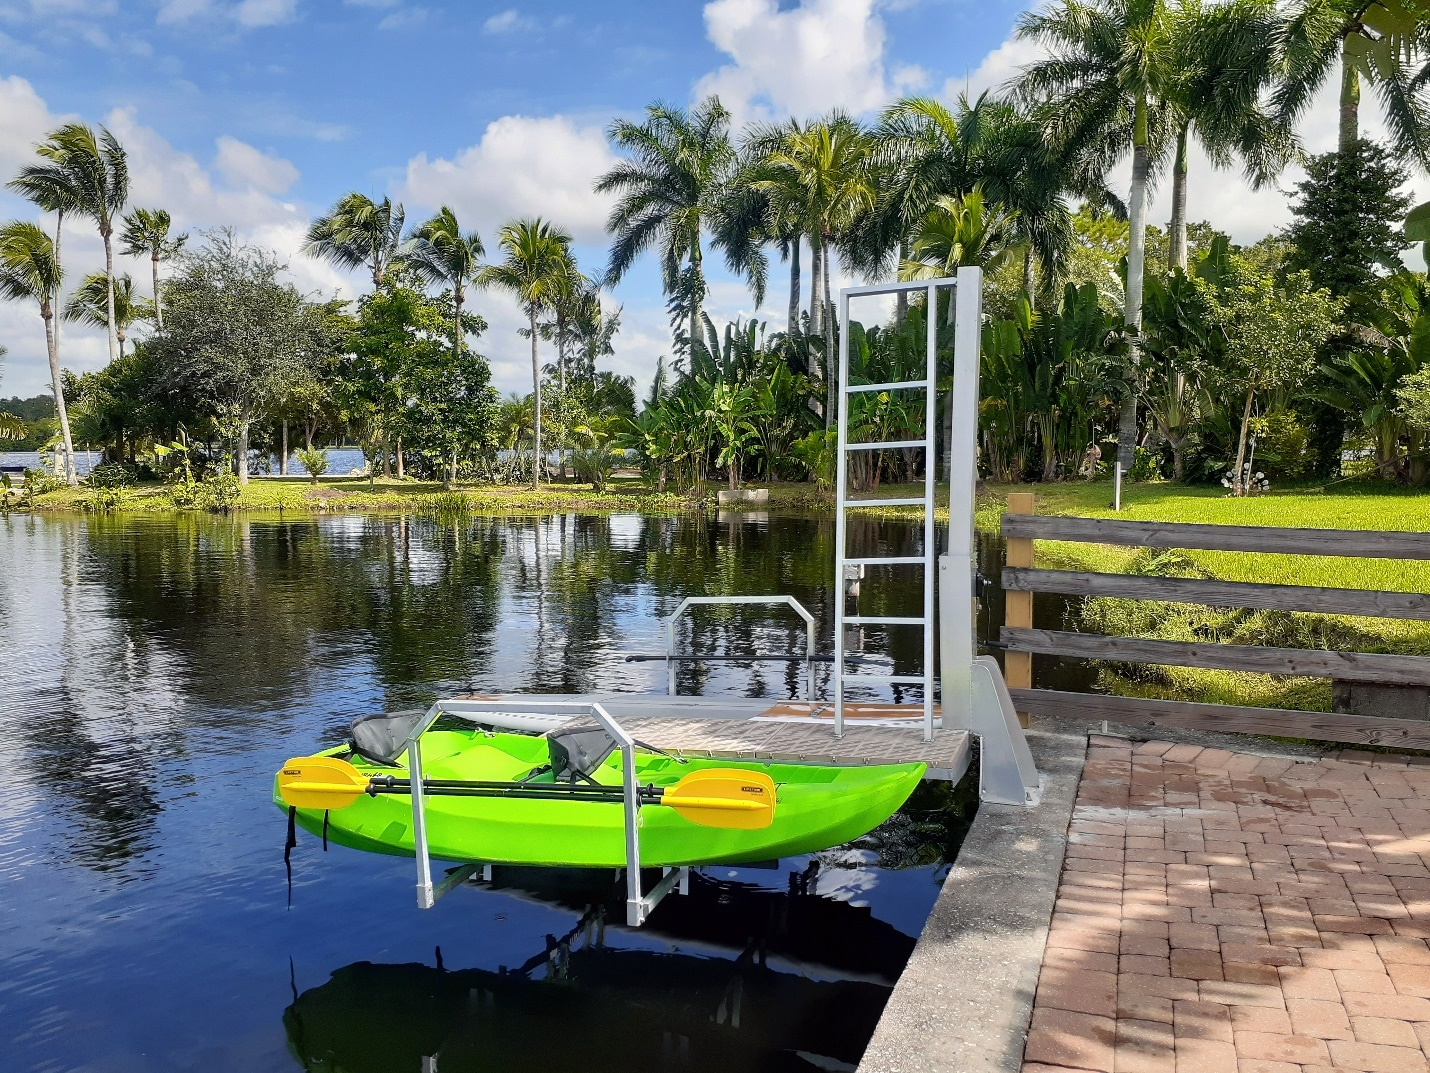 Improving Safety And Ease With An Imm Quality Dual Kayak Lift